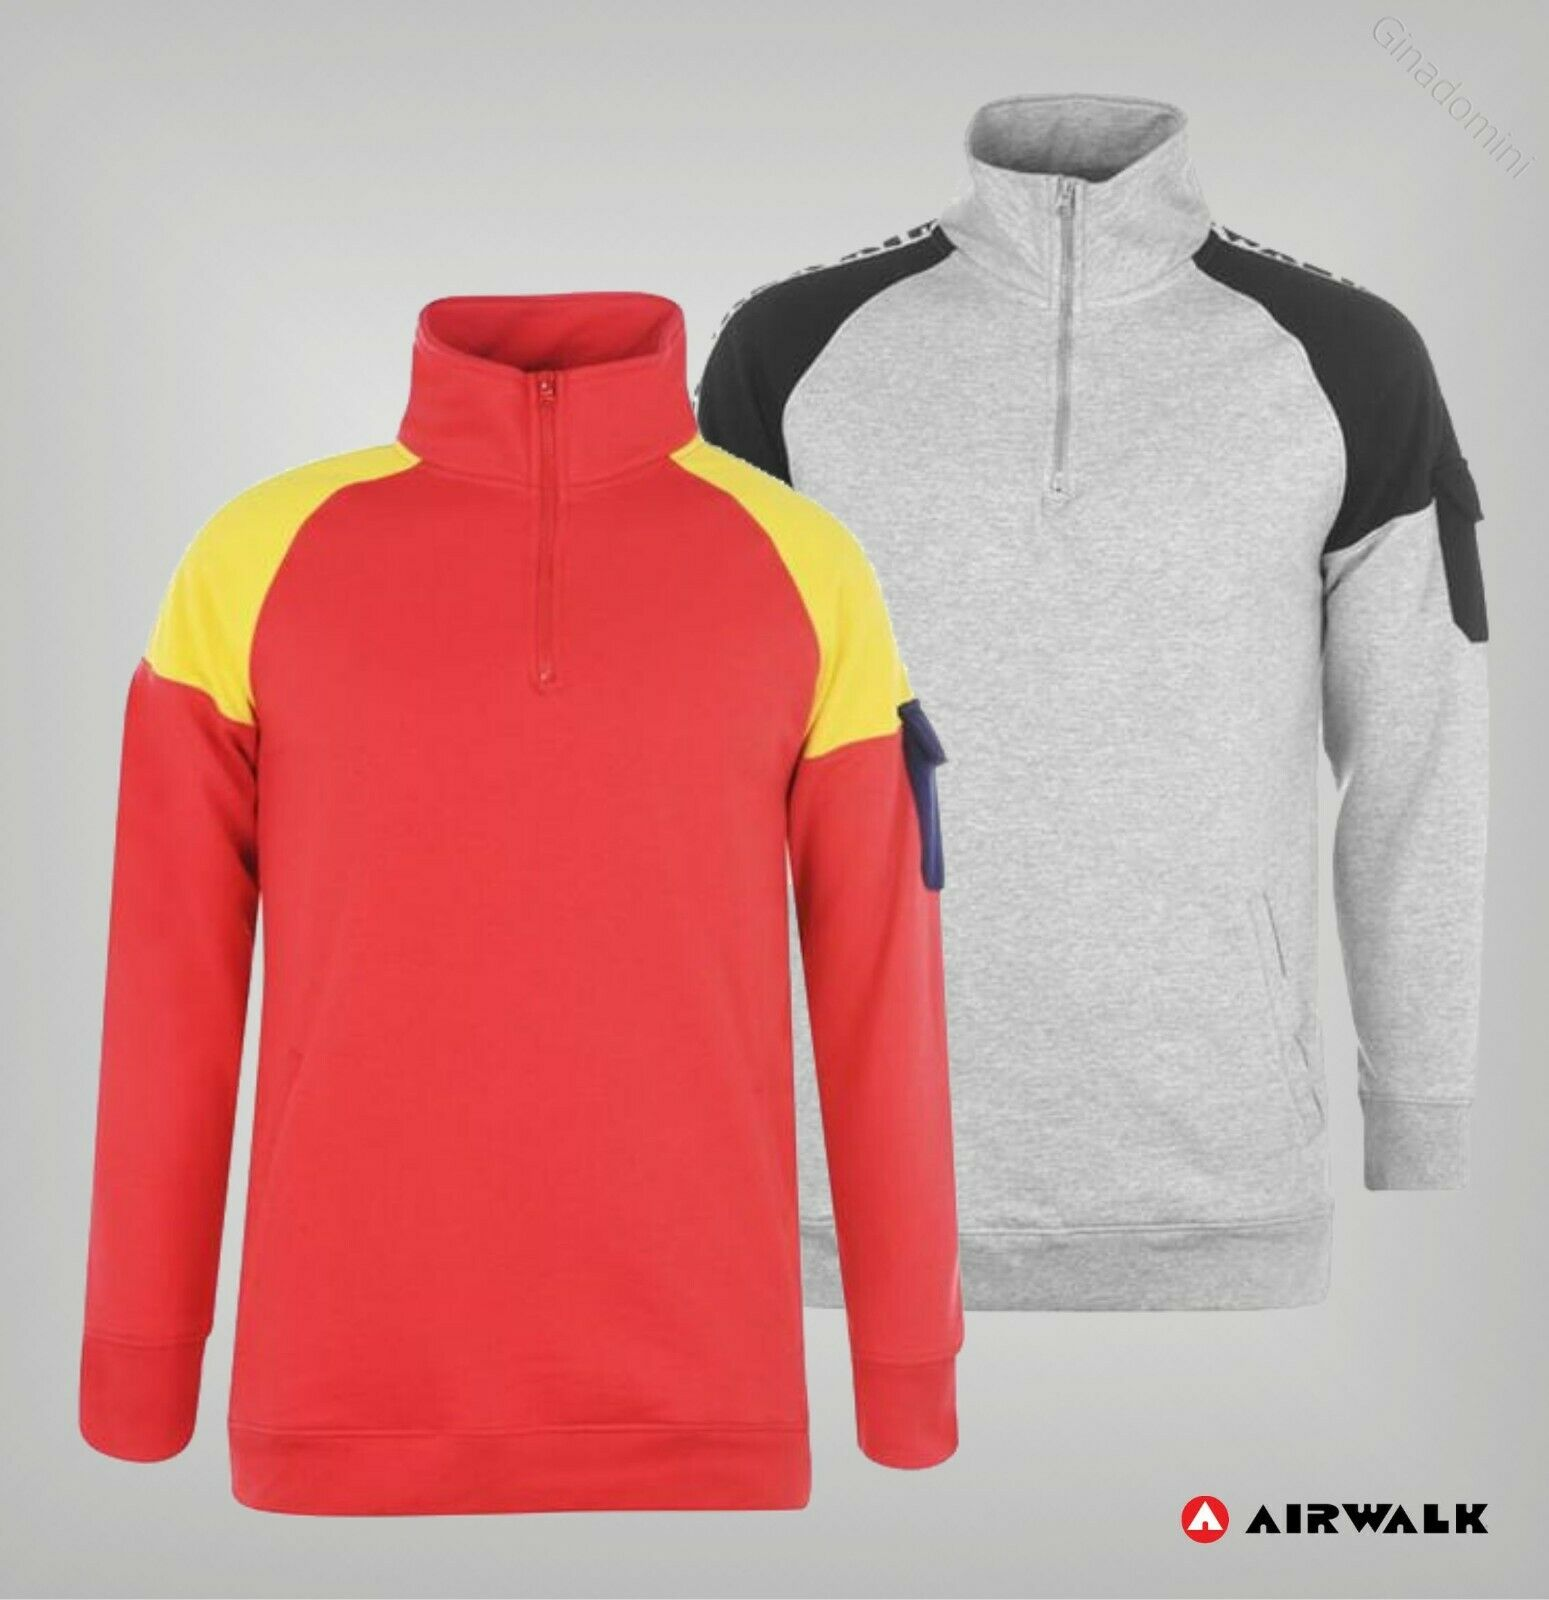 Mens Airwalk Over The Head Long Sleeves Woven Sweatshirt Sizes from S to XL